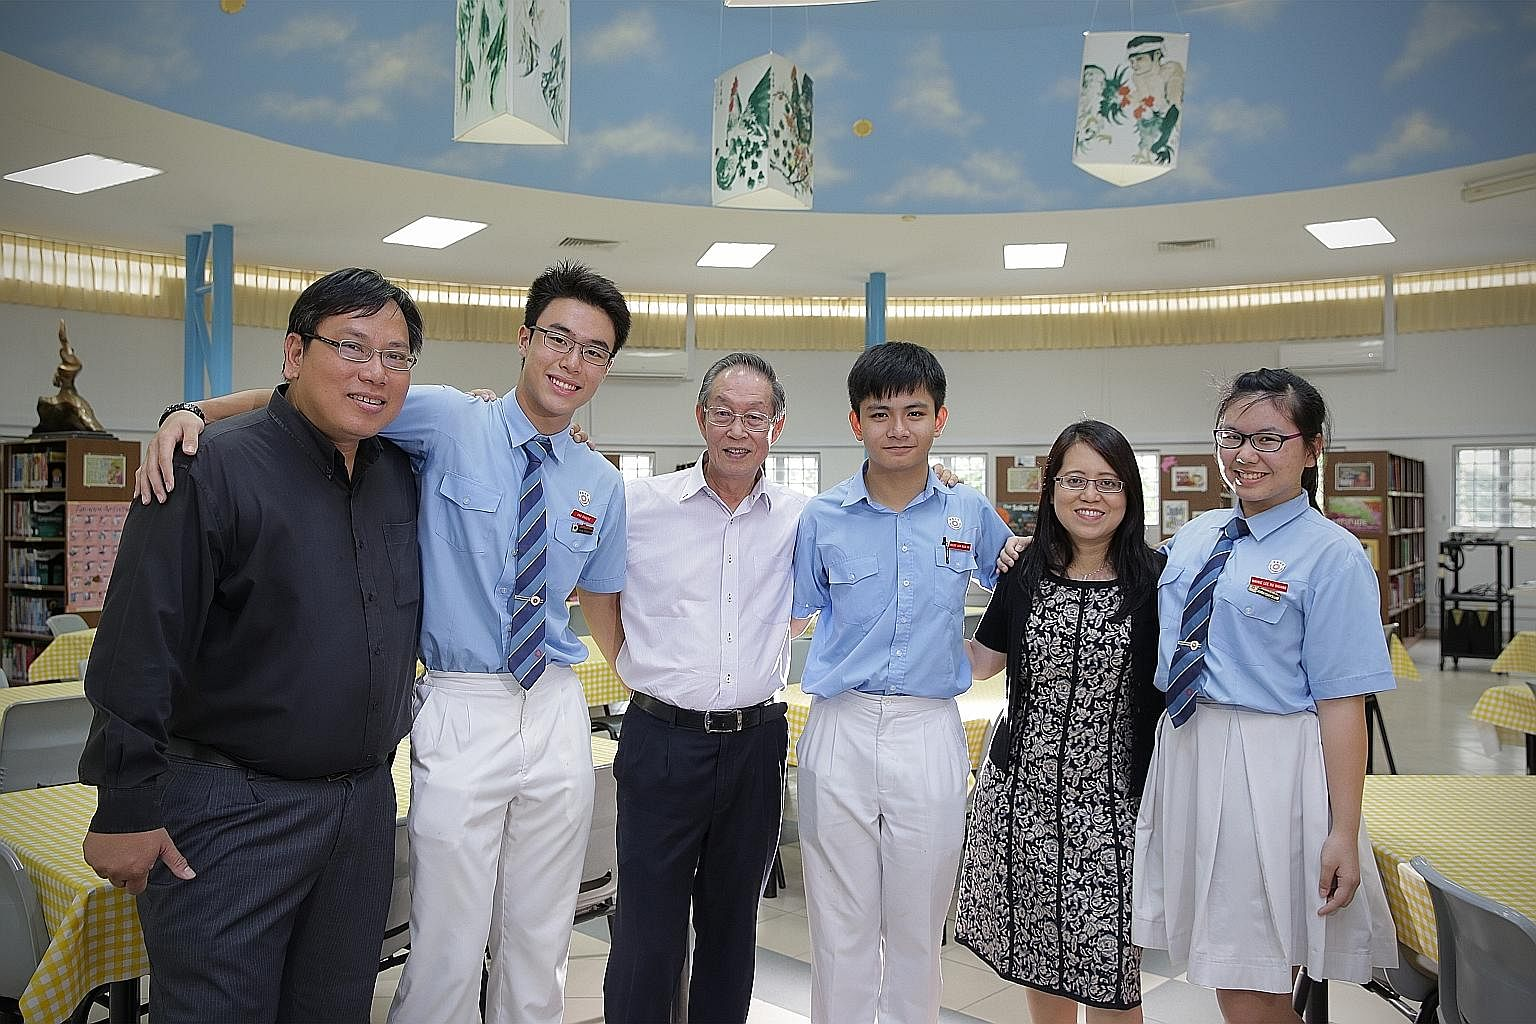 Former student Philip Wu benefited from his school teachers, including Mr Lau Cheong Wong. He now gives back and opens his firm to his juniors for holiday internships. (From left) Mr Wu, student Ong Qing Zhe, Mr Lau, student Vincent Liew, principal W